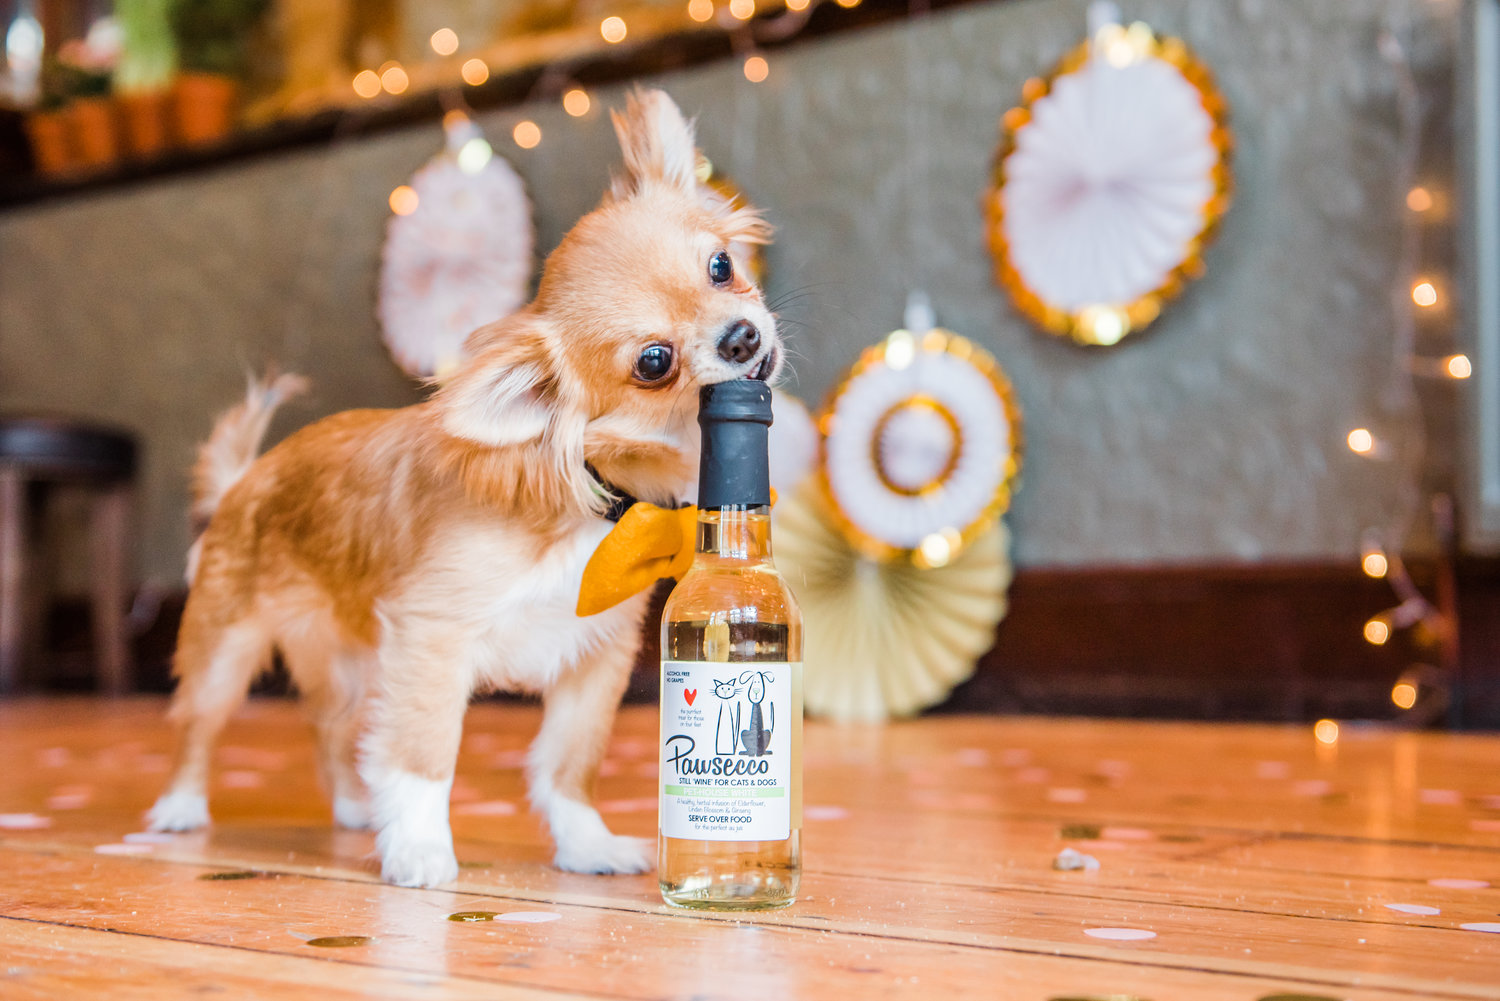 Dog drinking pawsecco.jpg